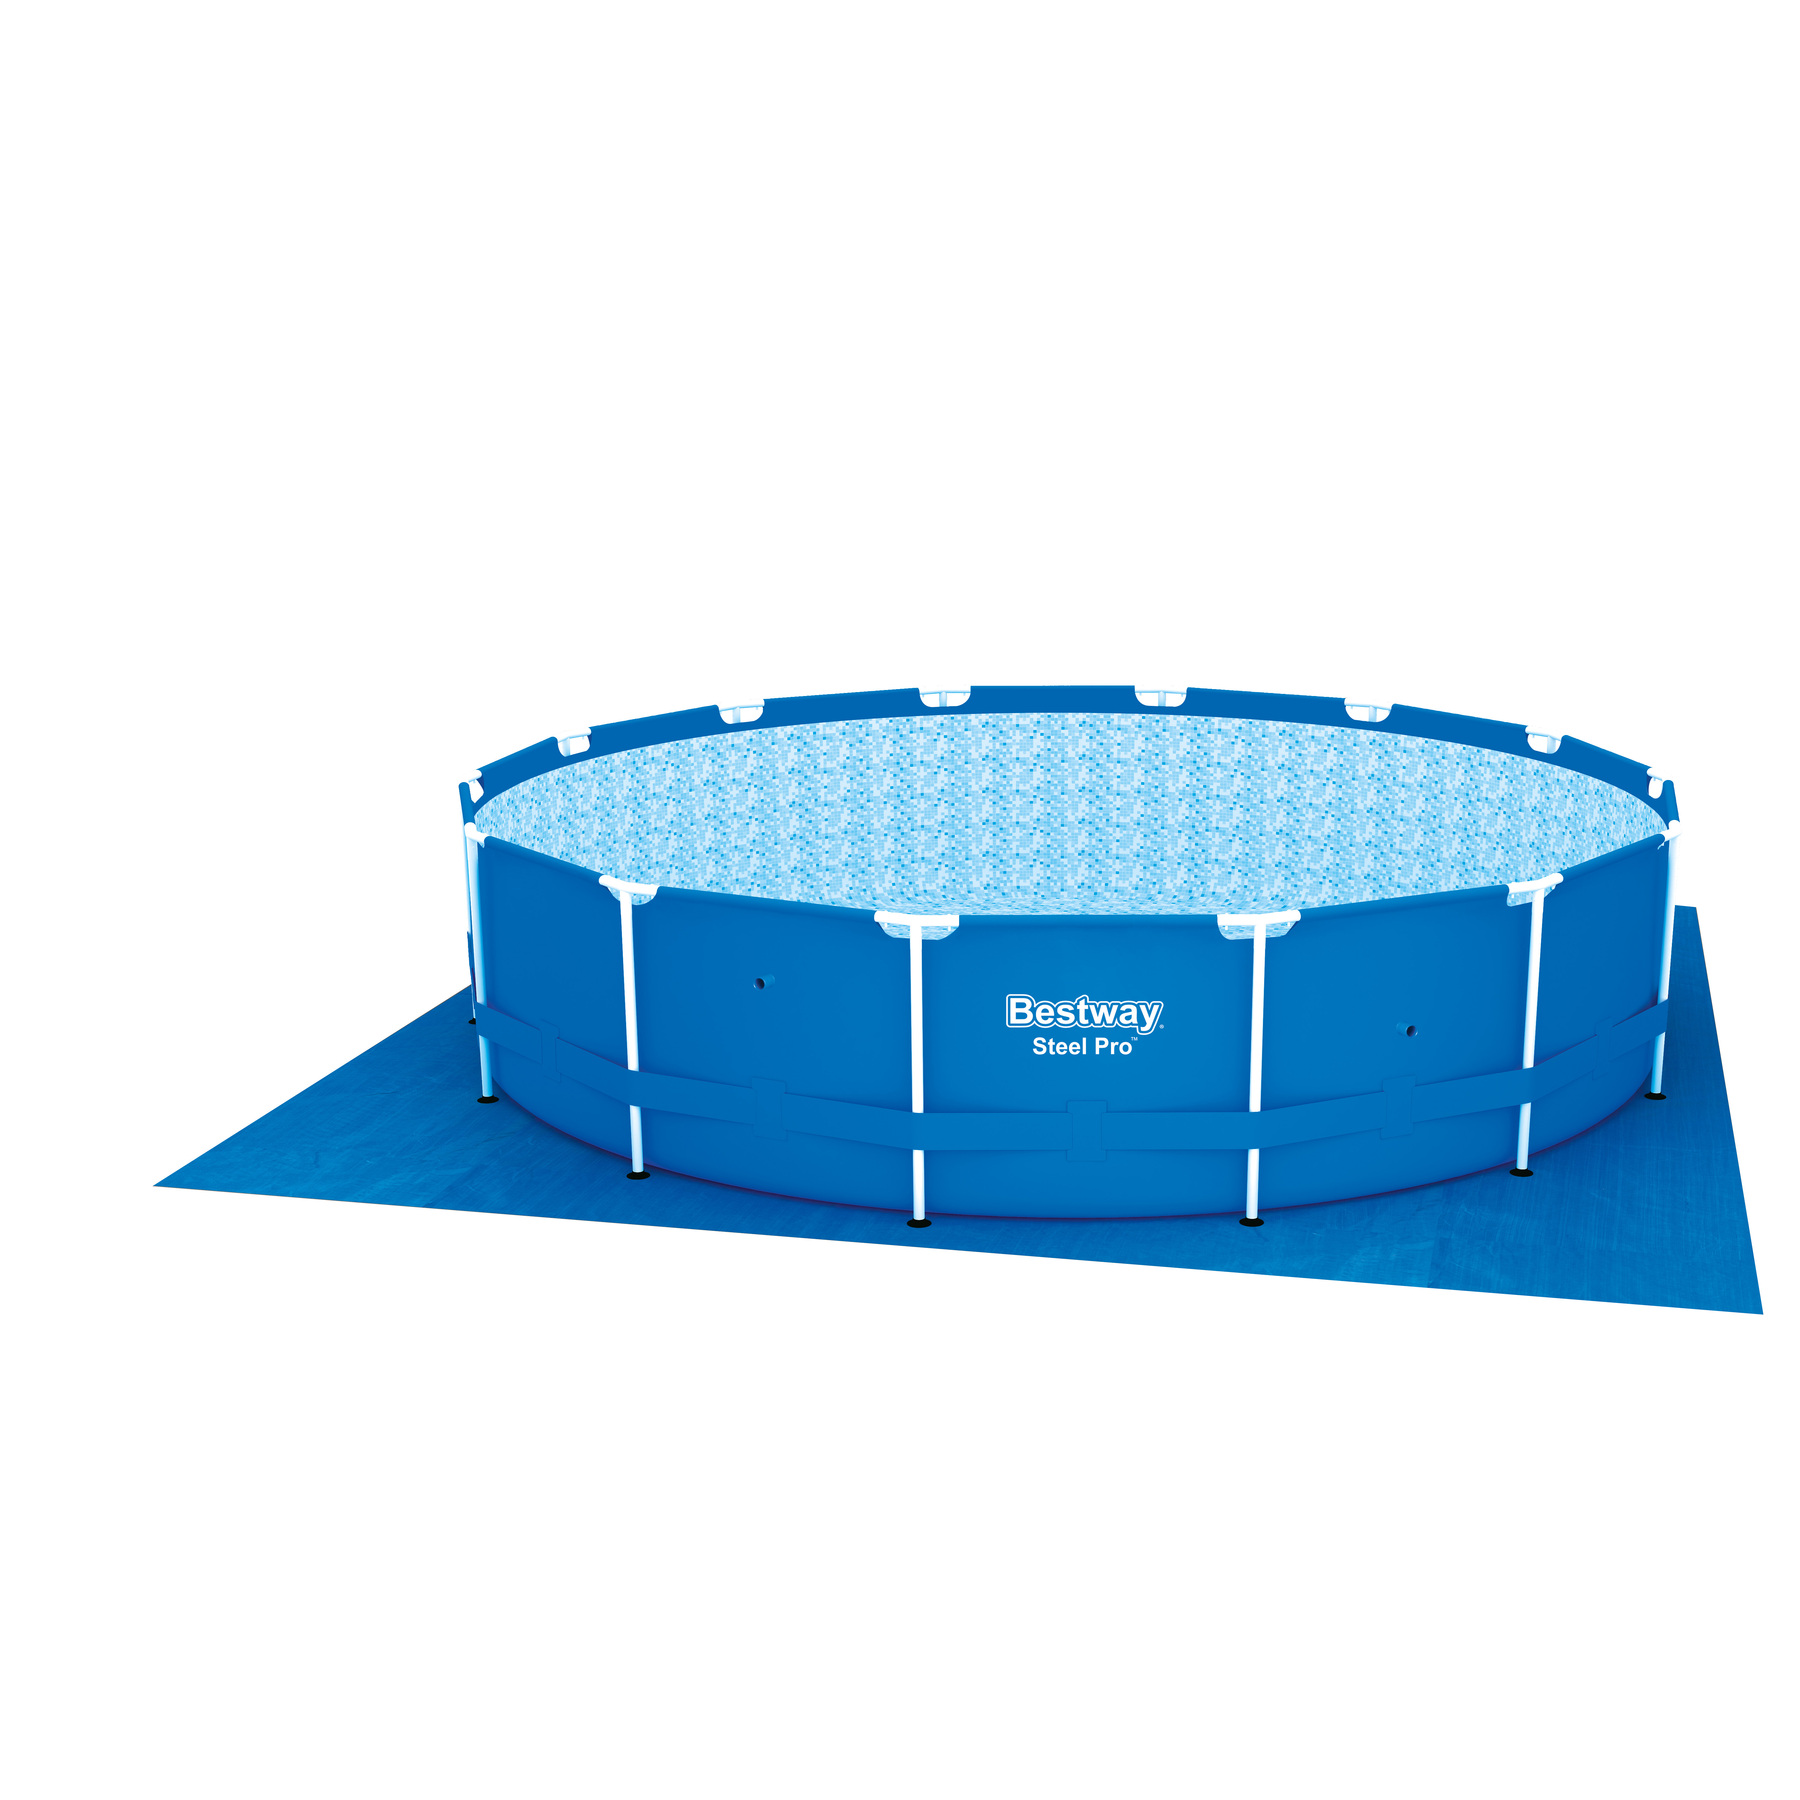 Scaffold Pool Round, For Garden, 427 X100 Cm, 12110 L (full Set), Bestway, Item No. 56422